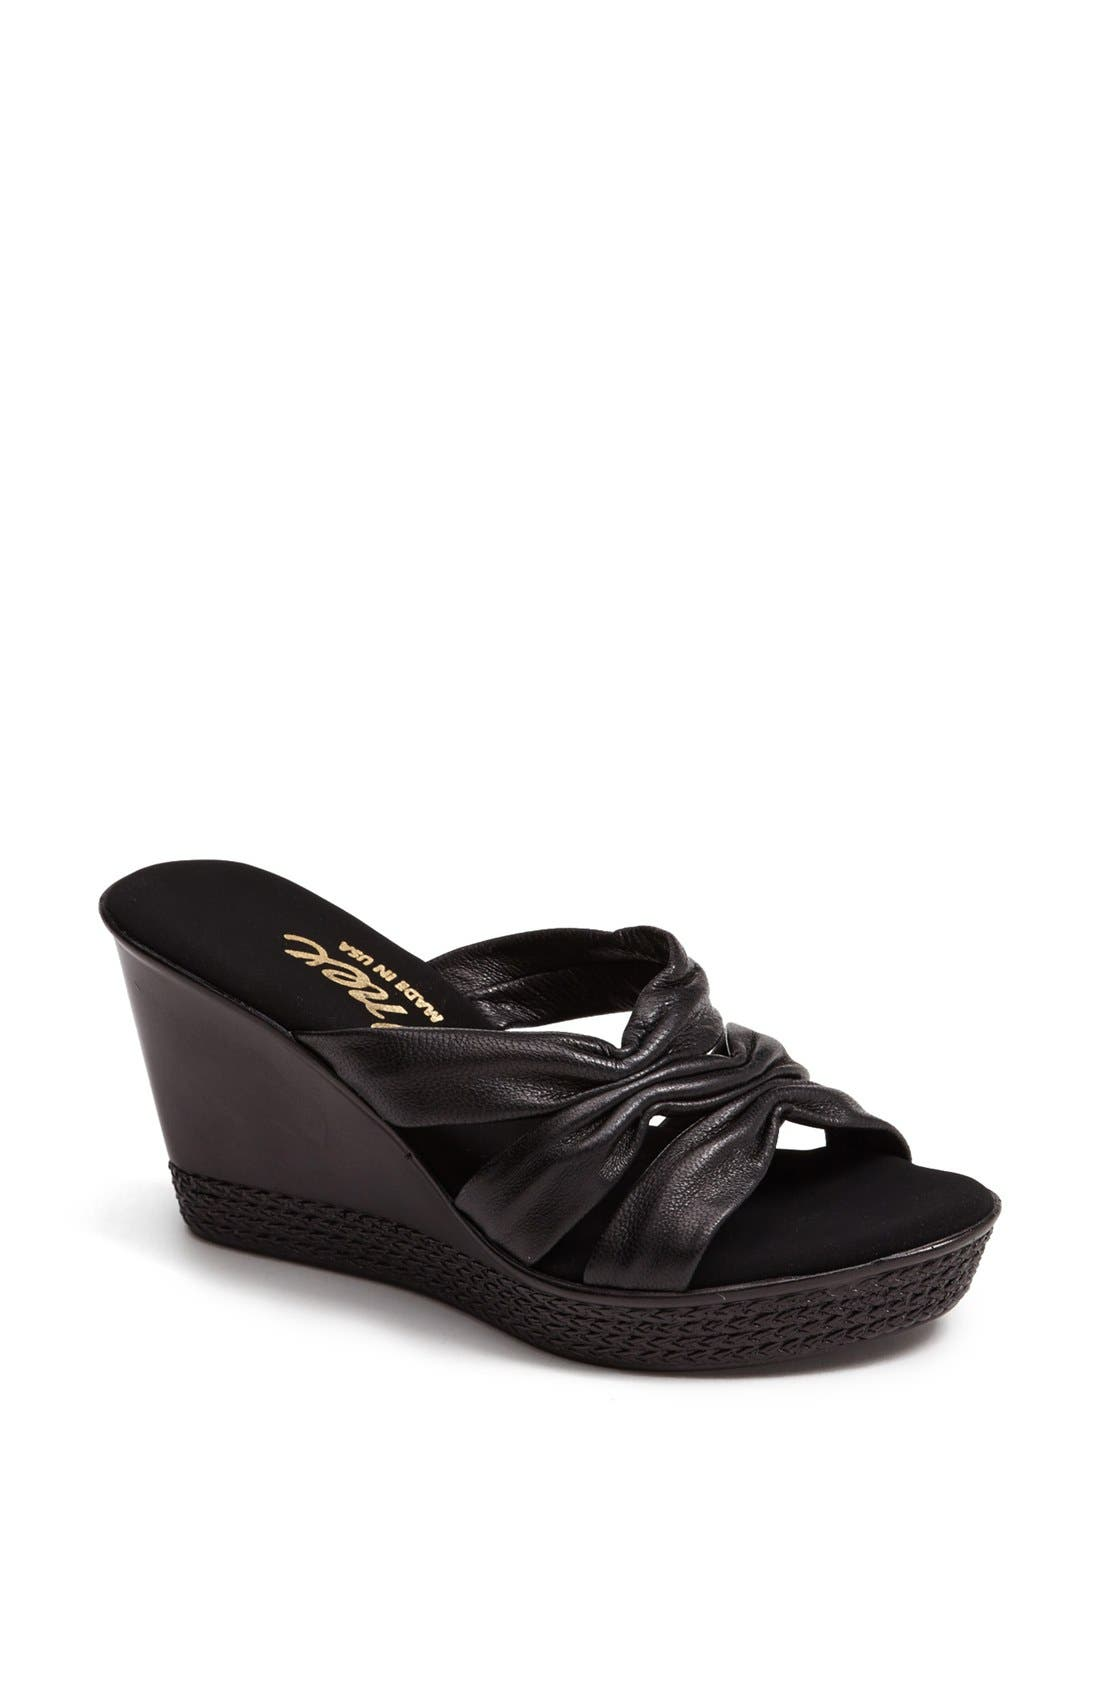 Alternate Image 1 Selected - Onex 'Felicity' Wedge Sandal